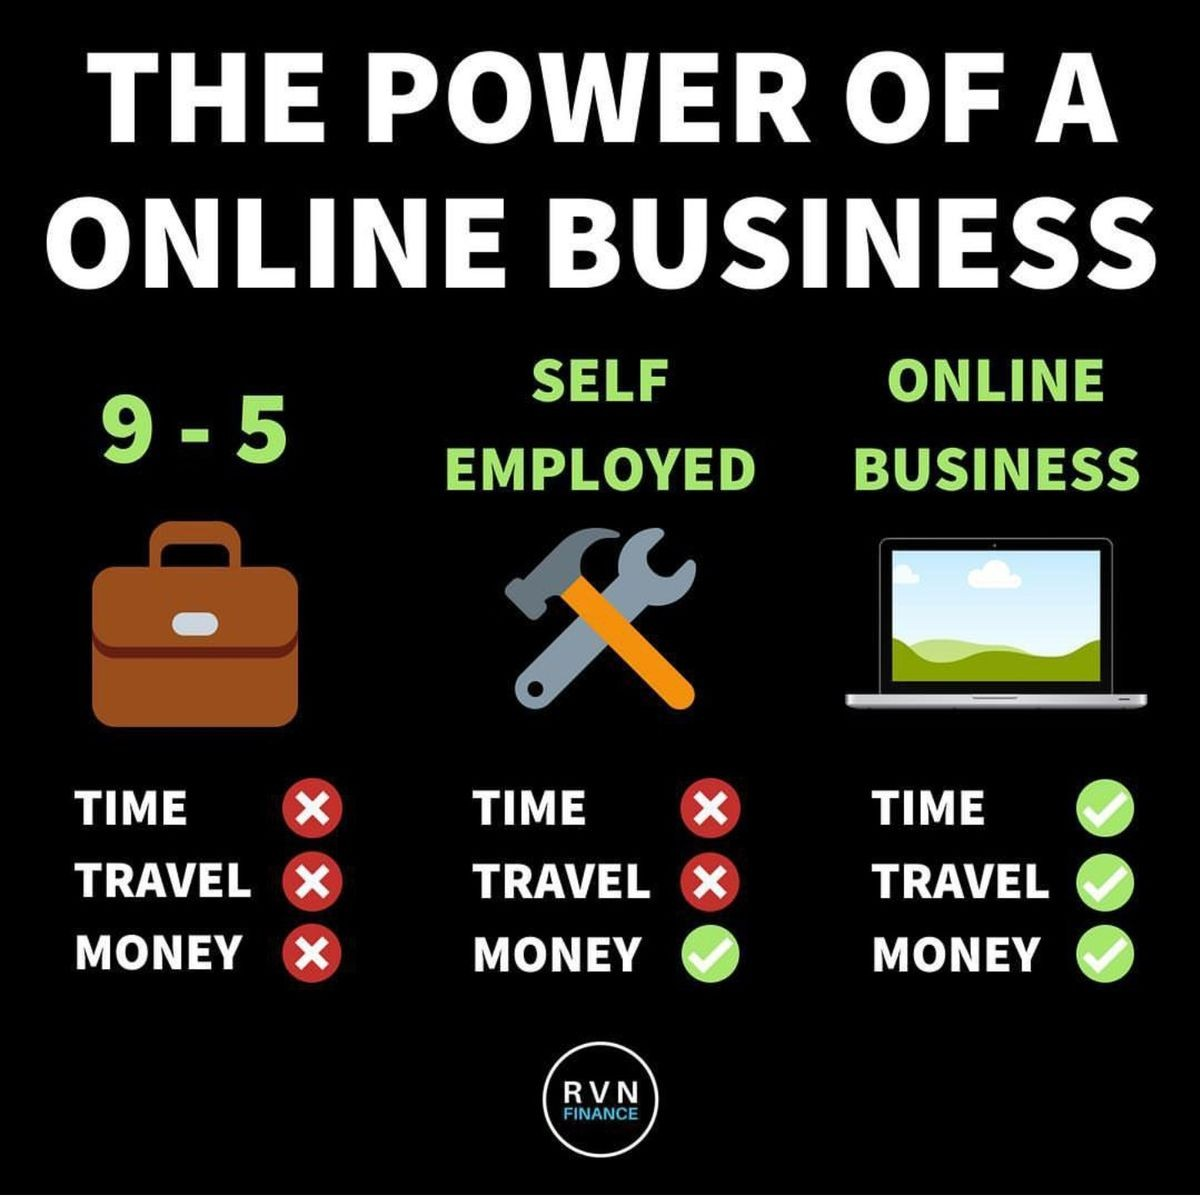 The Power Of A Online Business